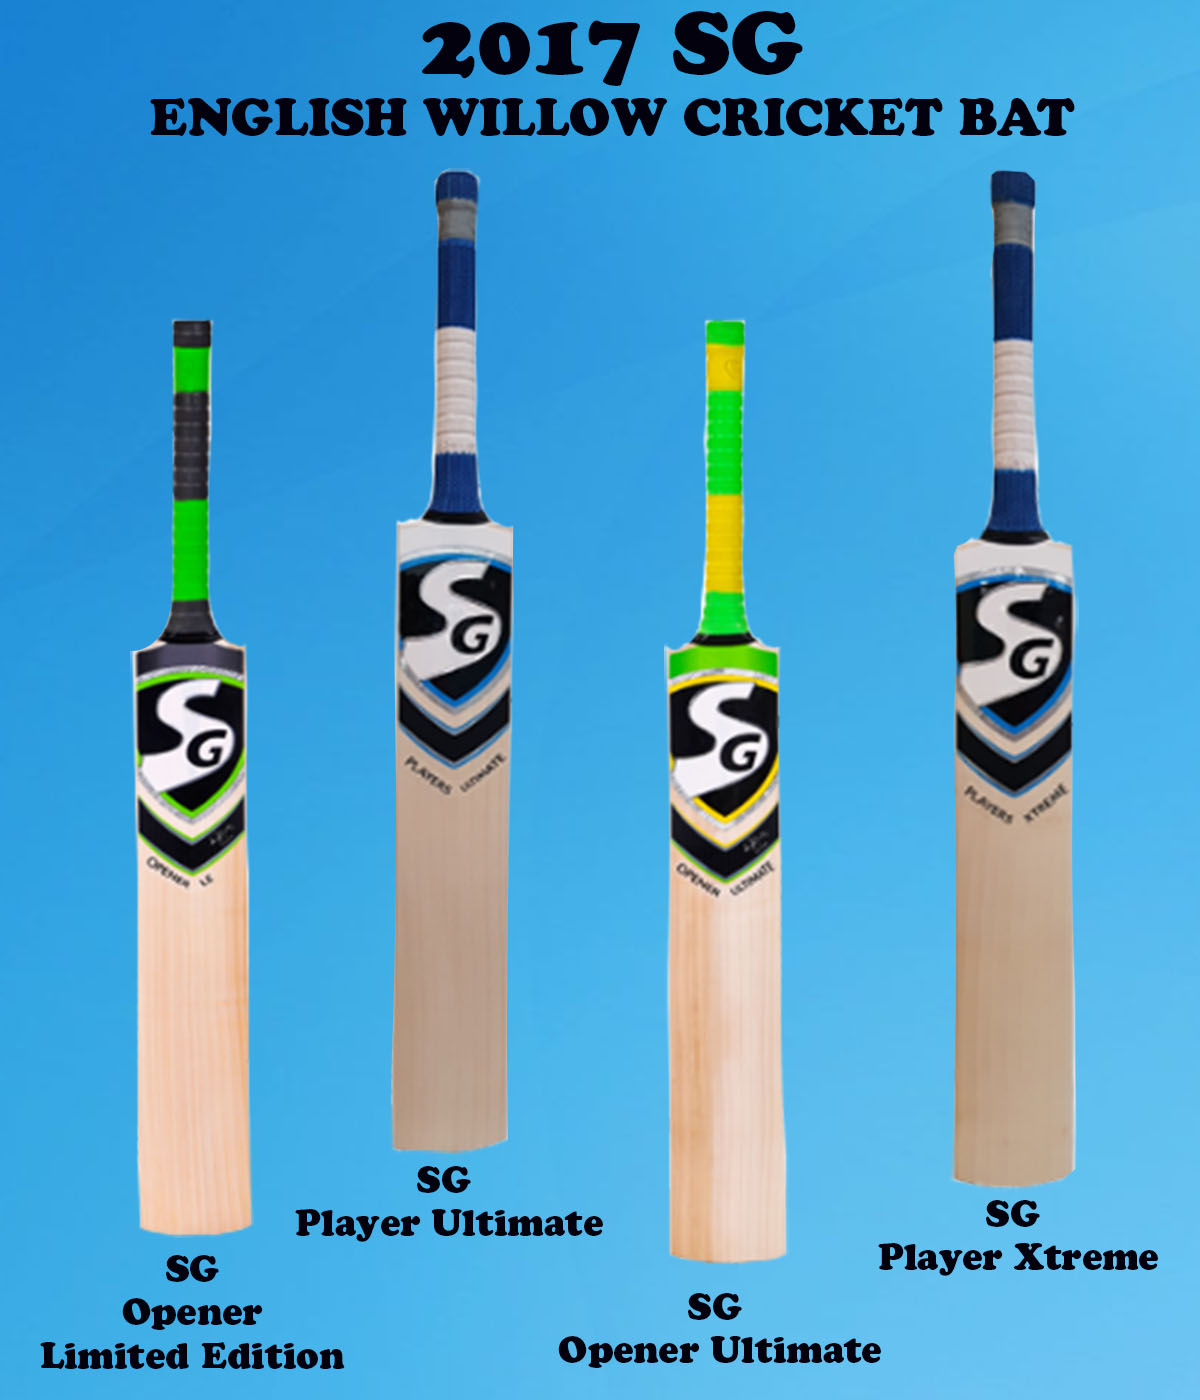 2017 SG English Willow Cricket Bat Images